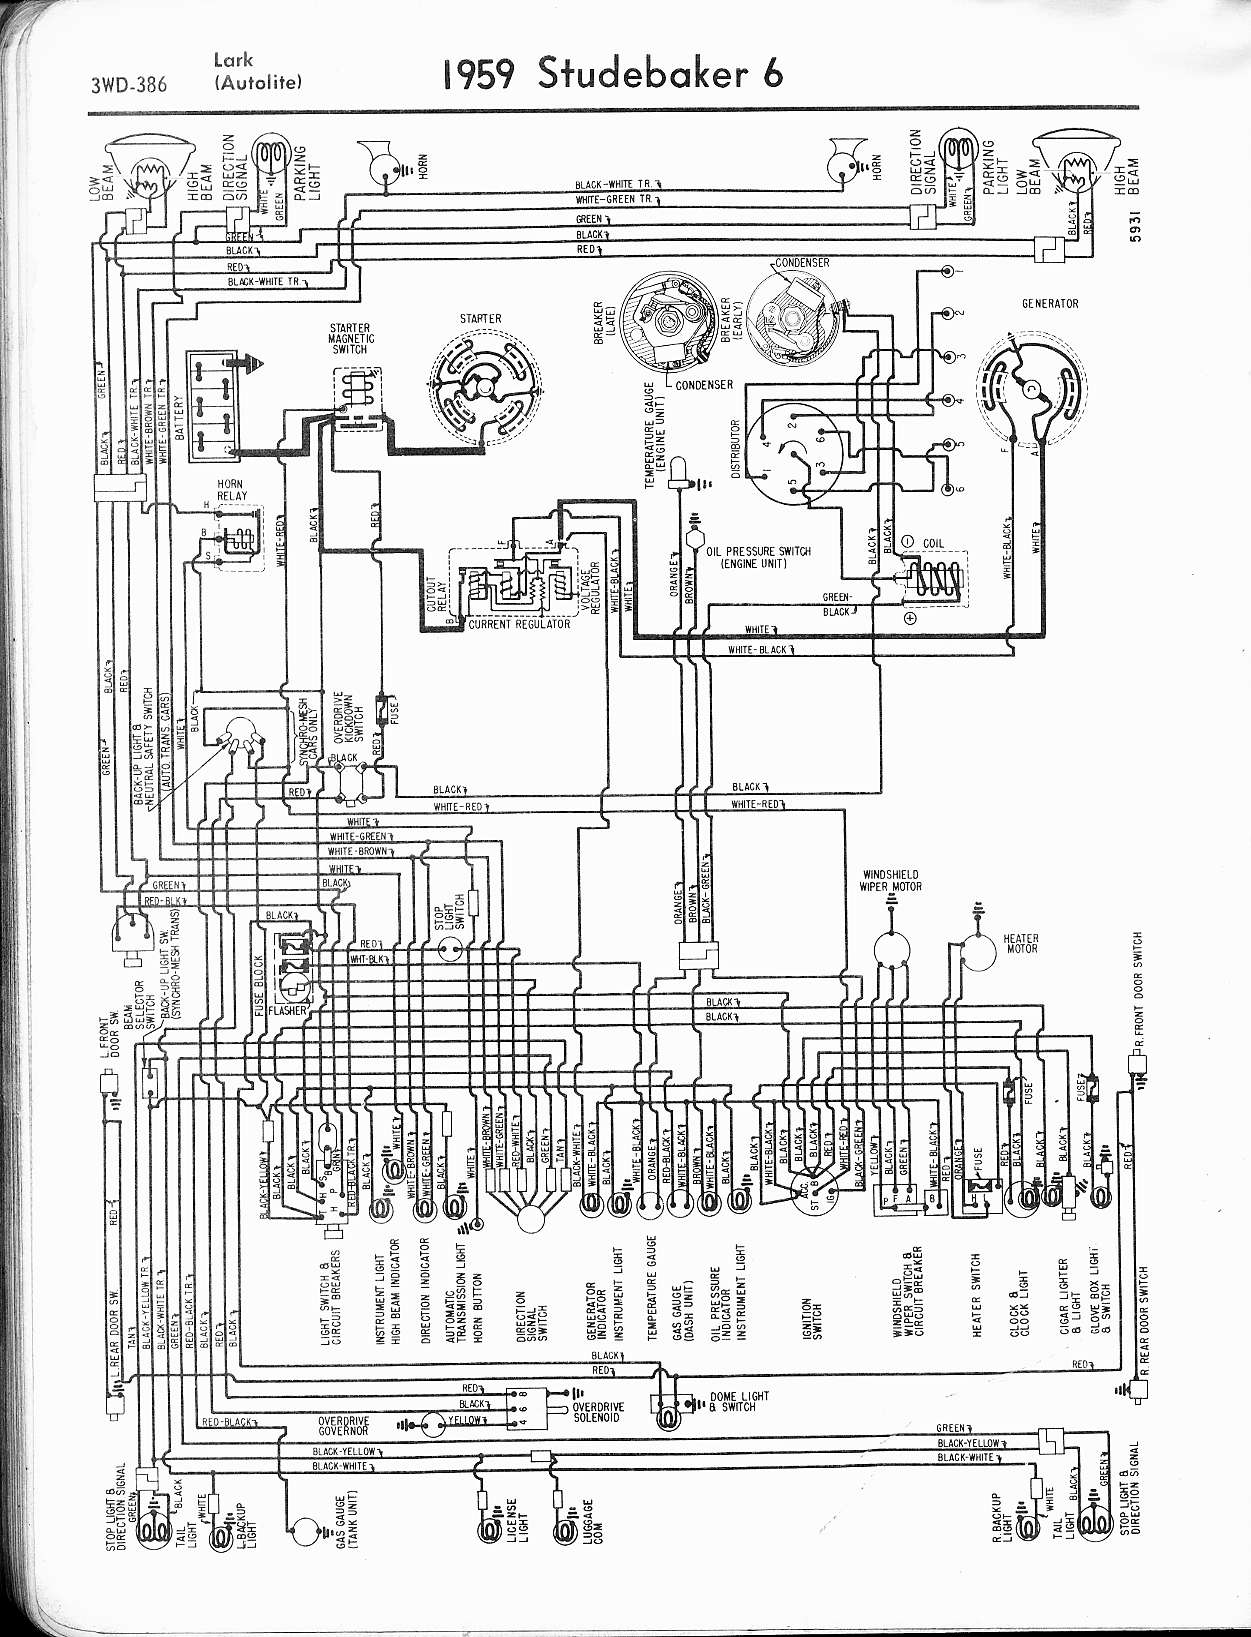 Studebaker wiring diagrams the old car manual project 1959 6 cyl lark autolite cheapraybanclubmaster Choice Image